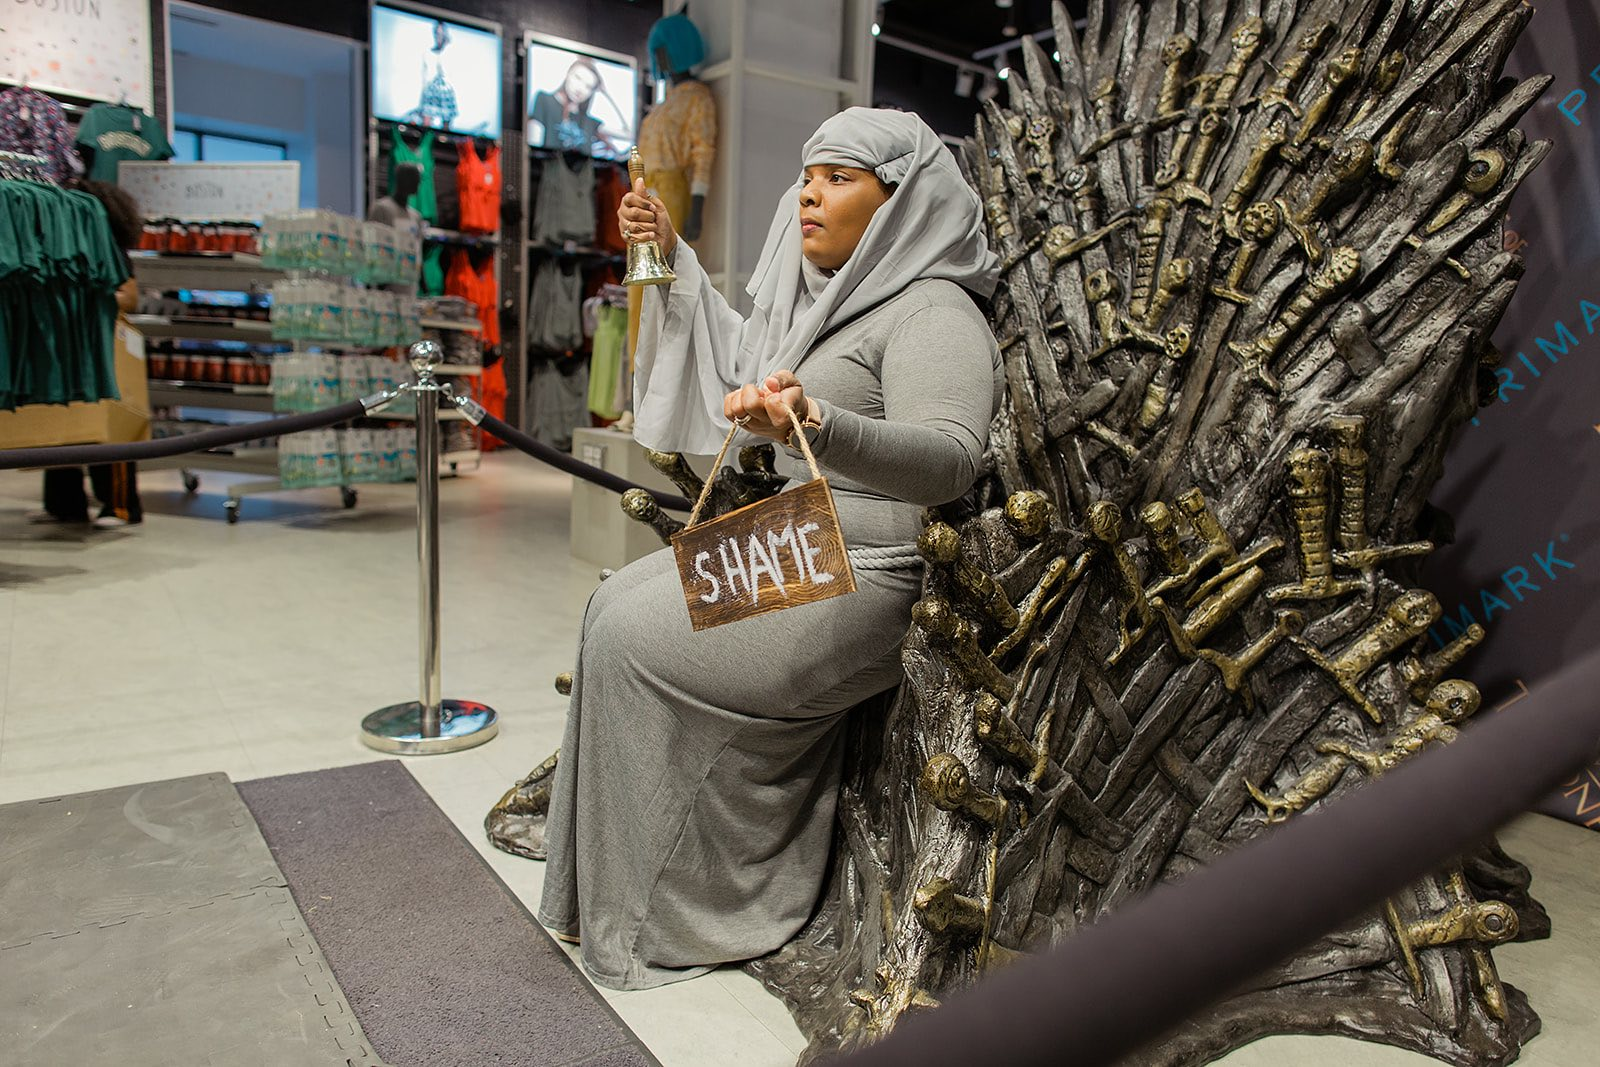 Fans sit on HBO's Iron Throne at a Primark event